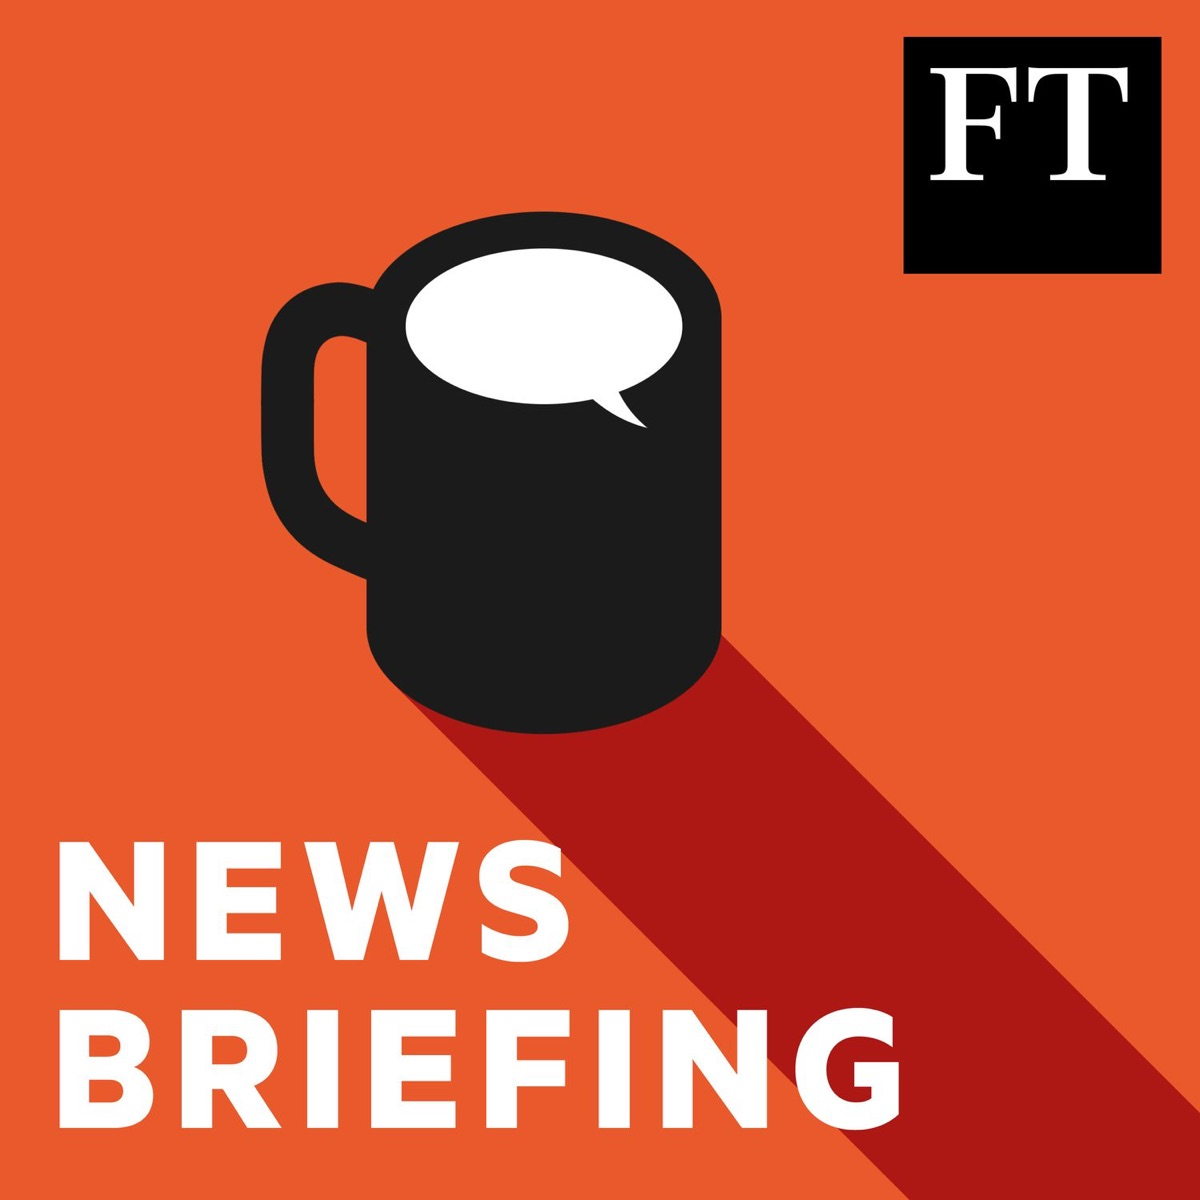 FT News Briefing